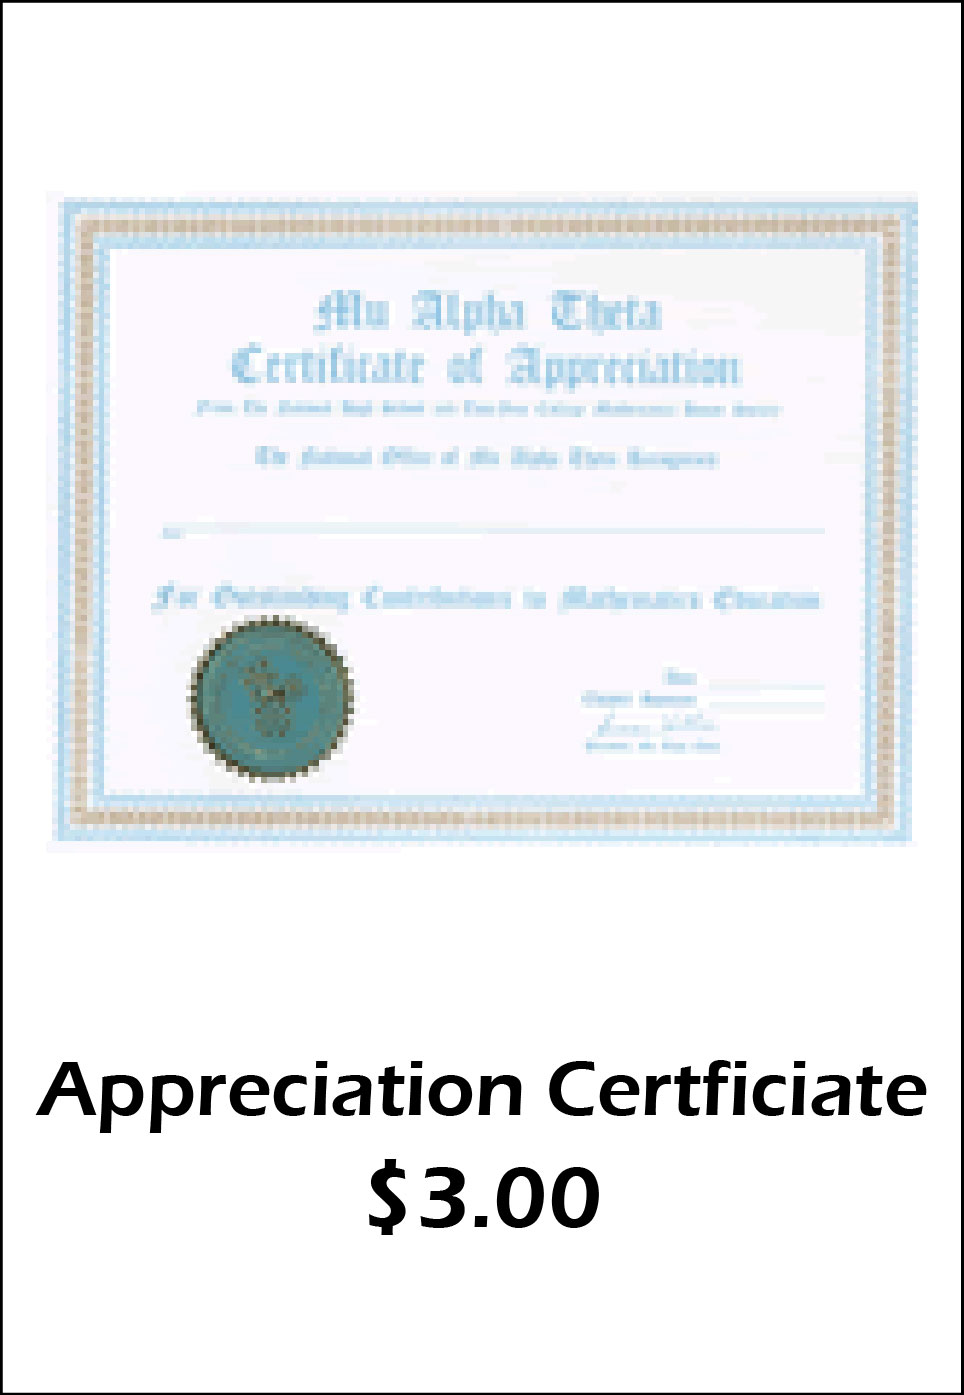 MAT Appreciation Certificate - $3.00